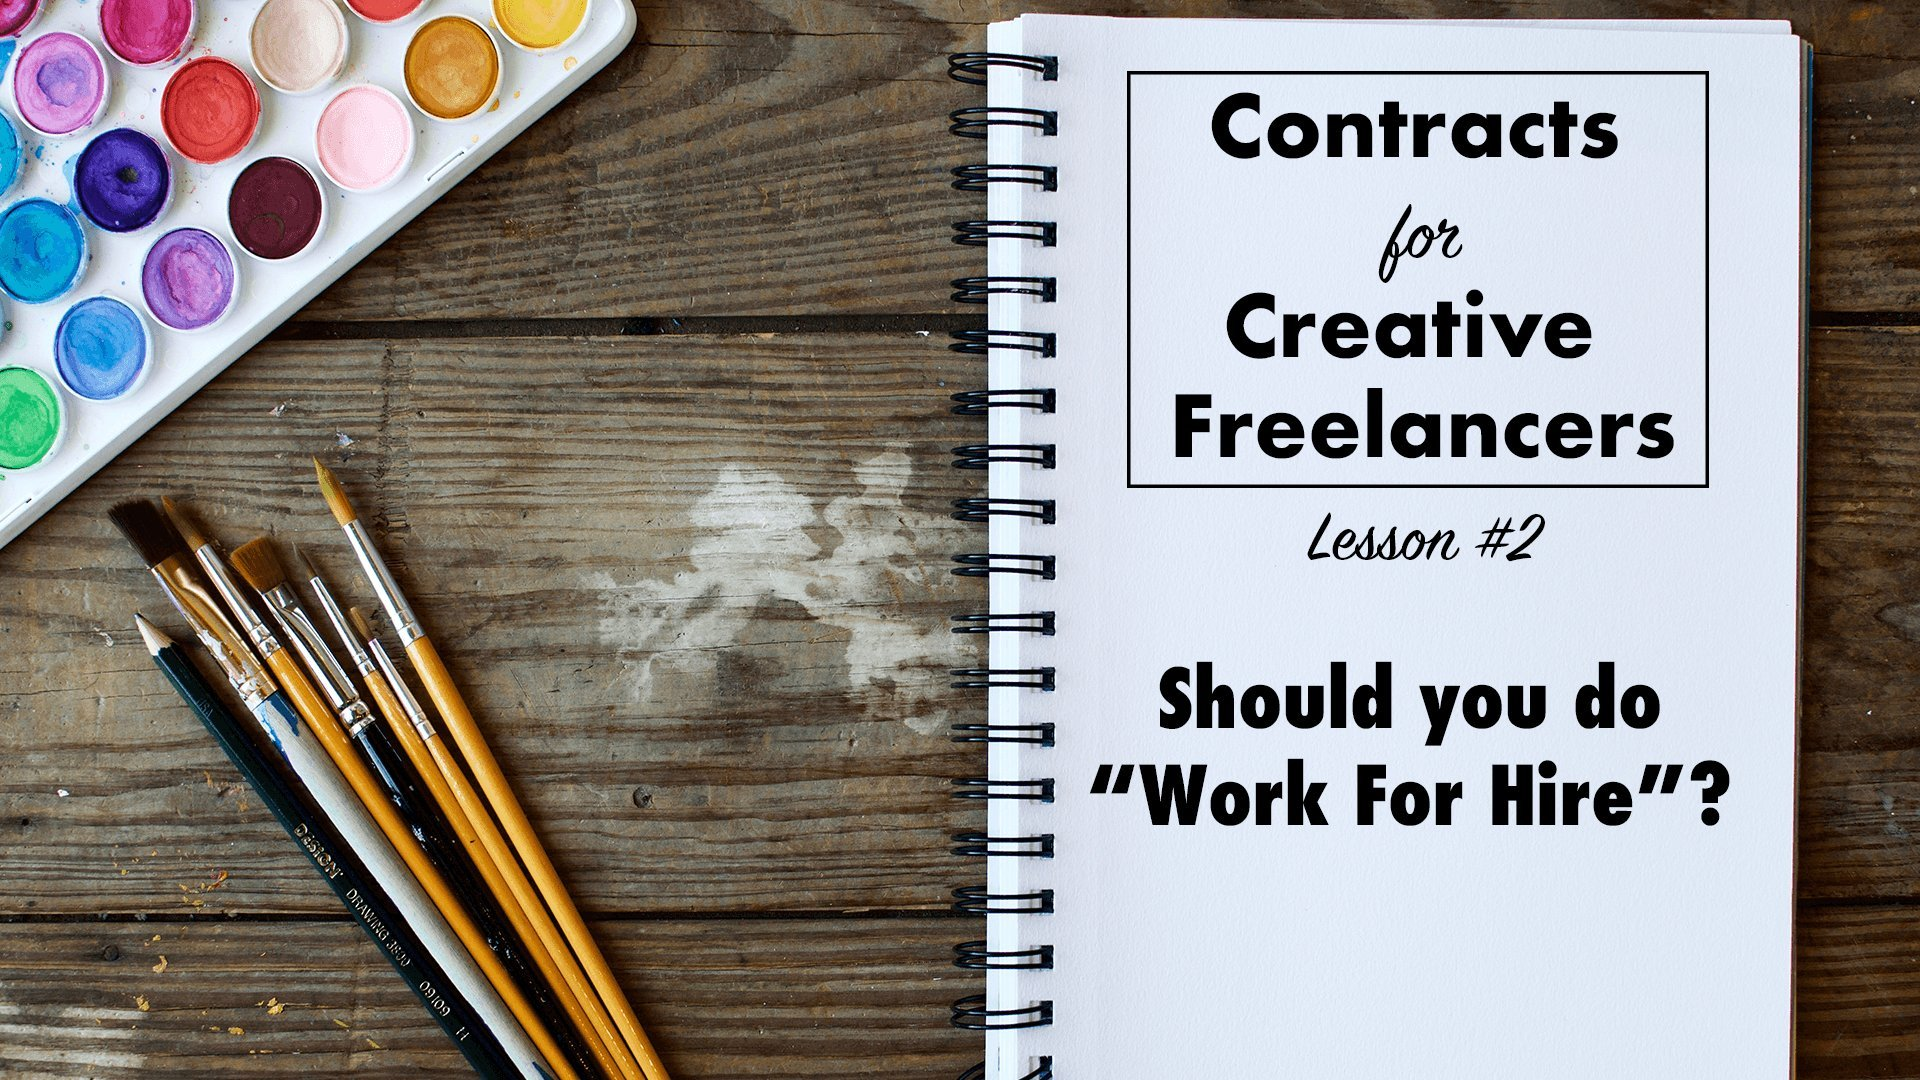 skillshare.com - Contracts for Creative Freelancers: Should You Do Work For Hire? | Katie Lane